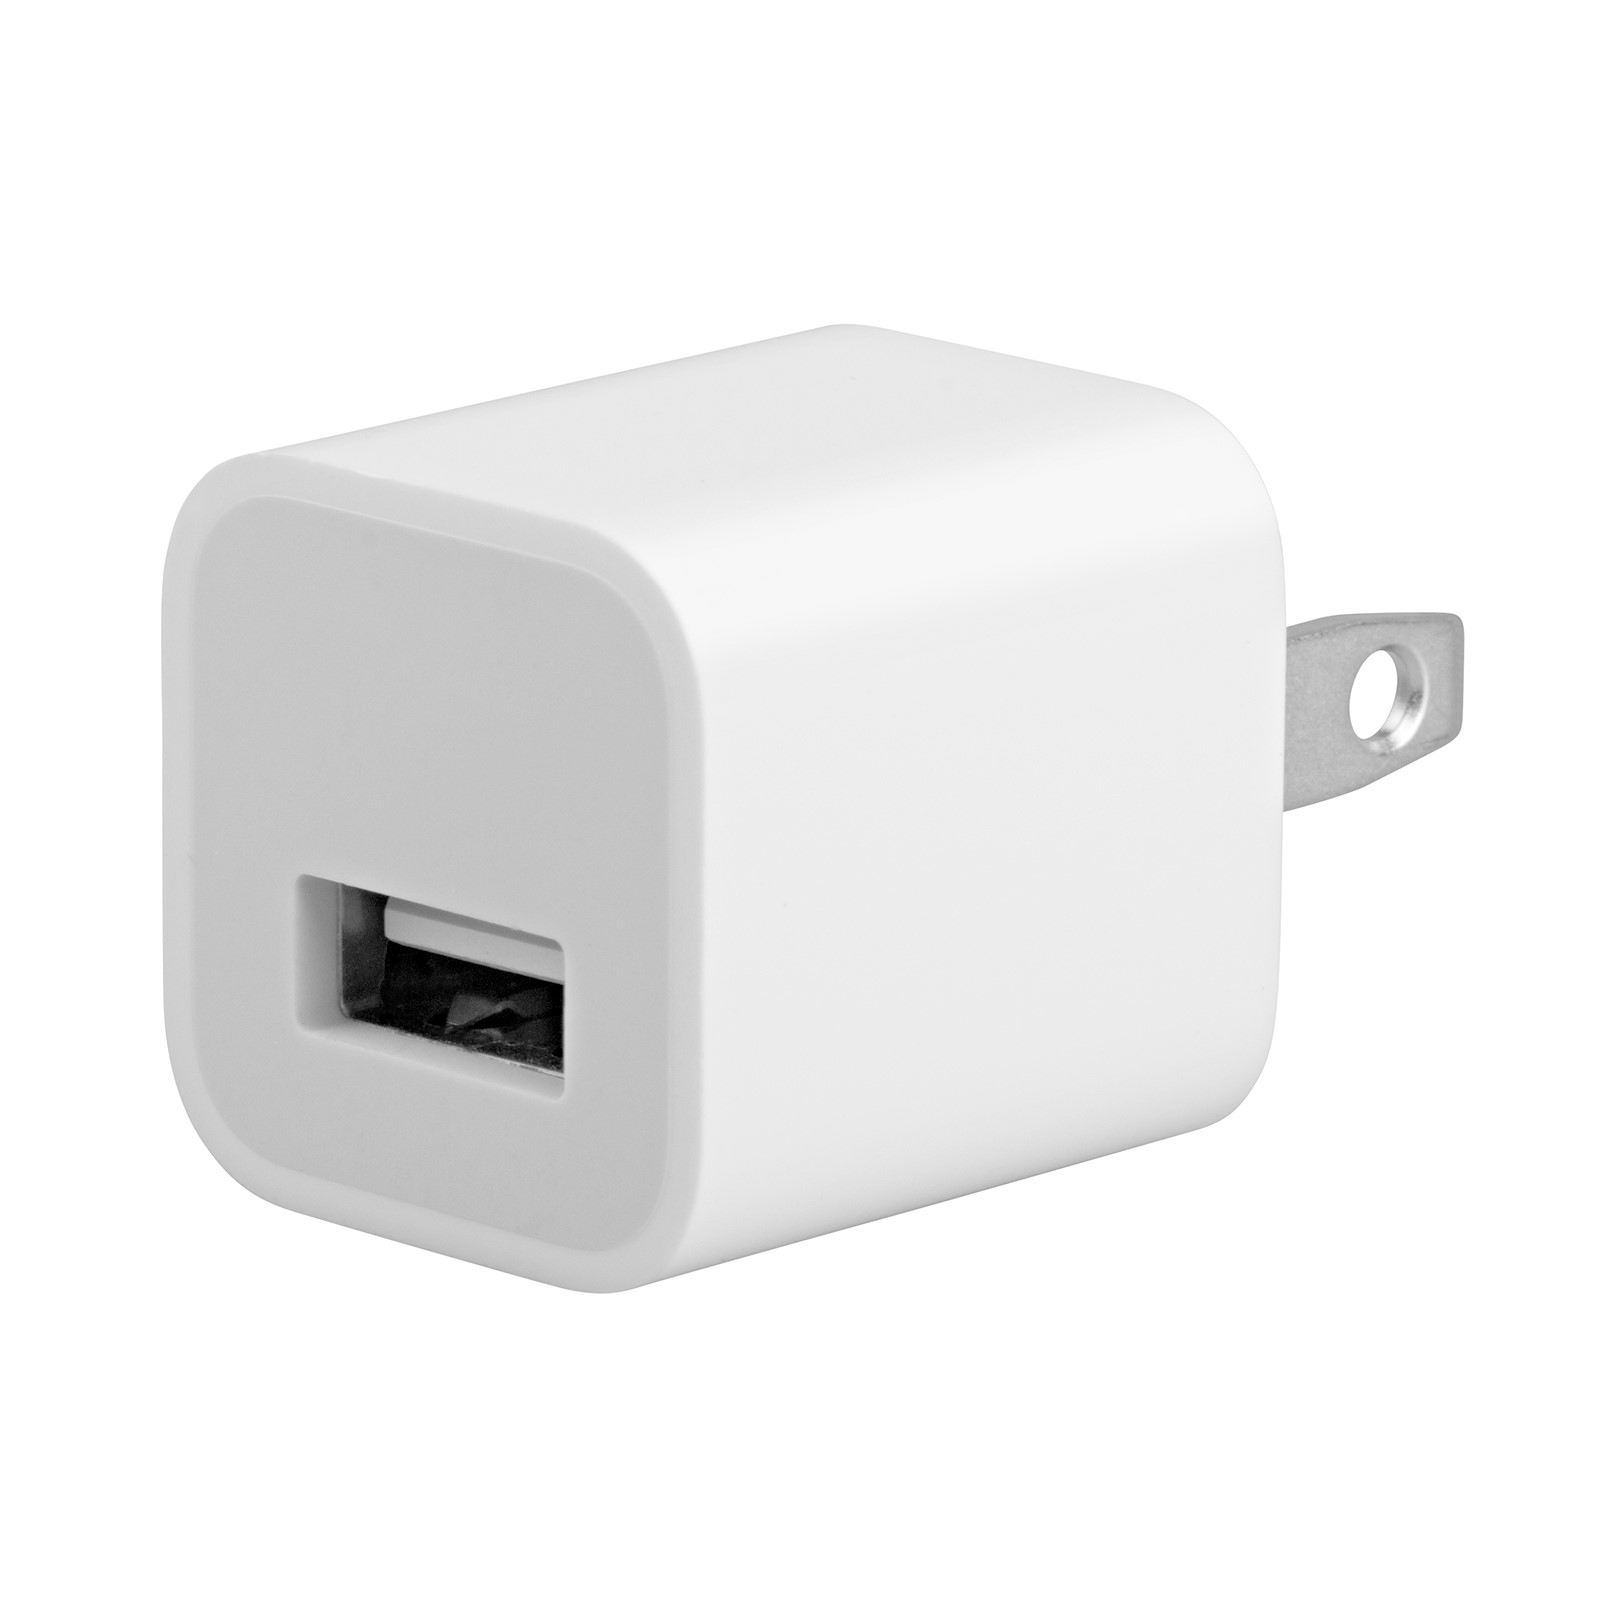 Iphone Wall Charger: Apple A1385 Travel USB Wall Charger For IPhone/iPad (White